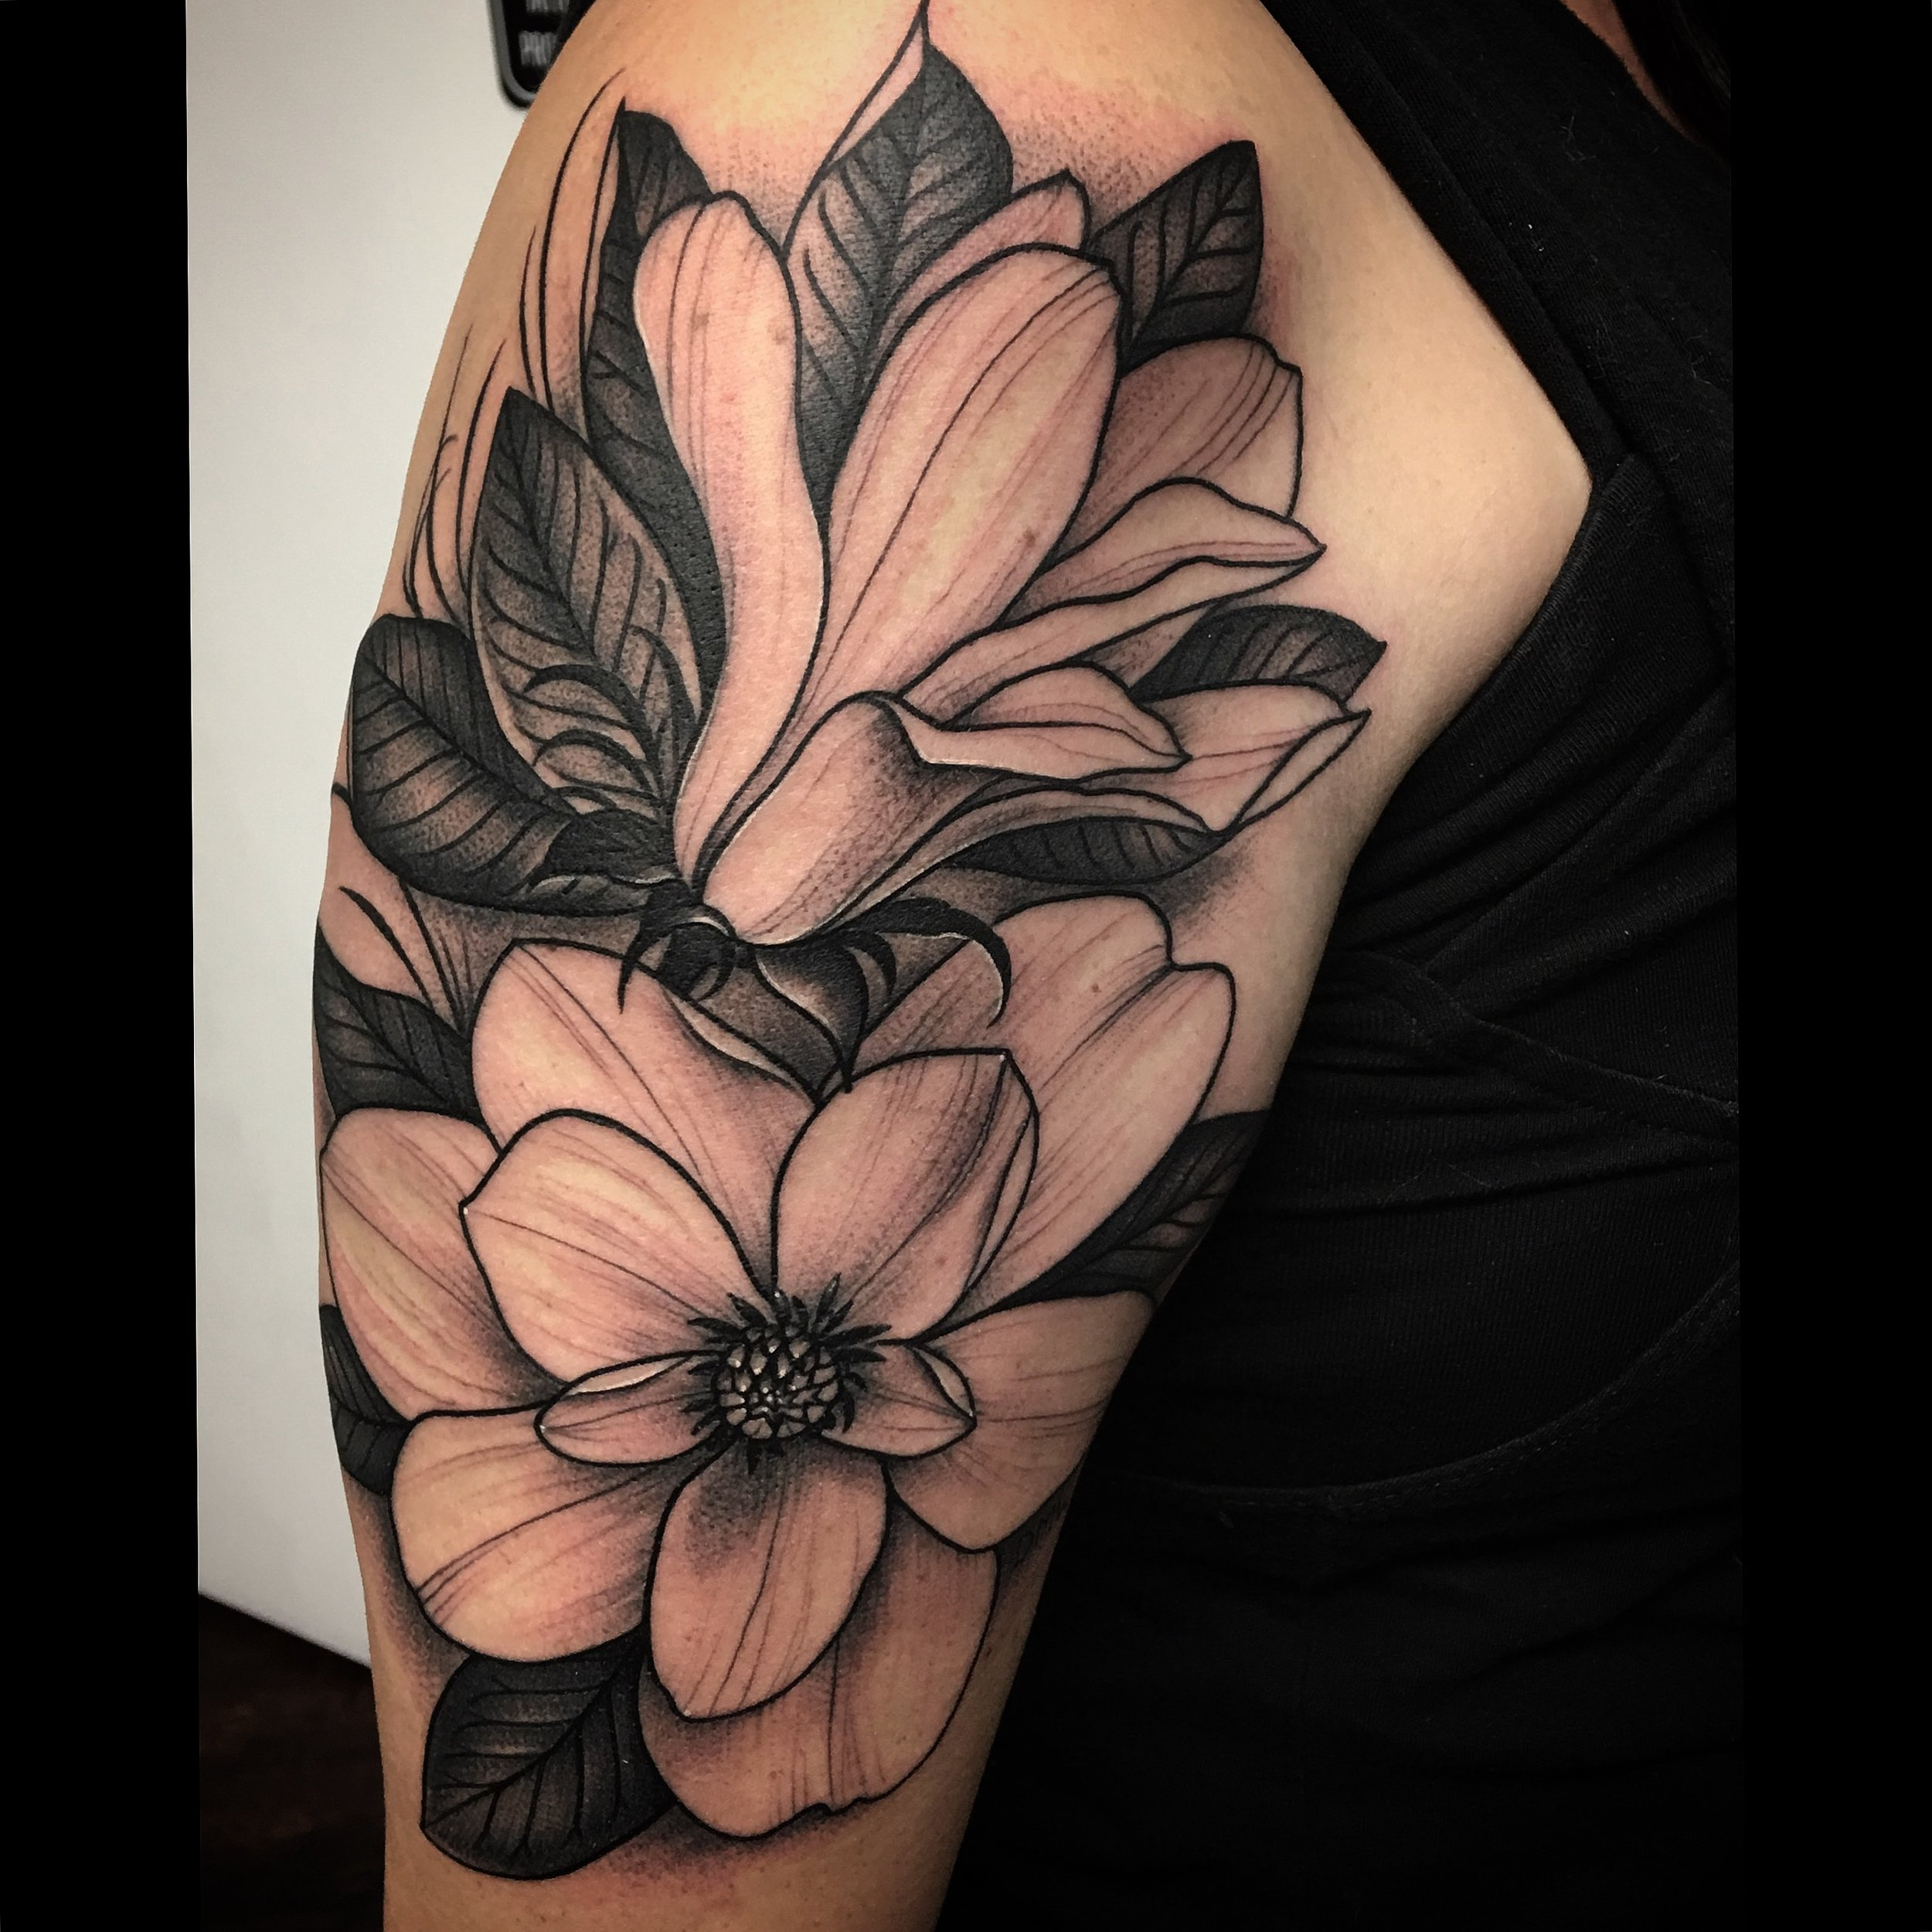 Realistic Black and Grey Magnolia Floral Tattoo by David Mushaney